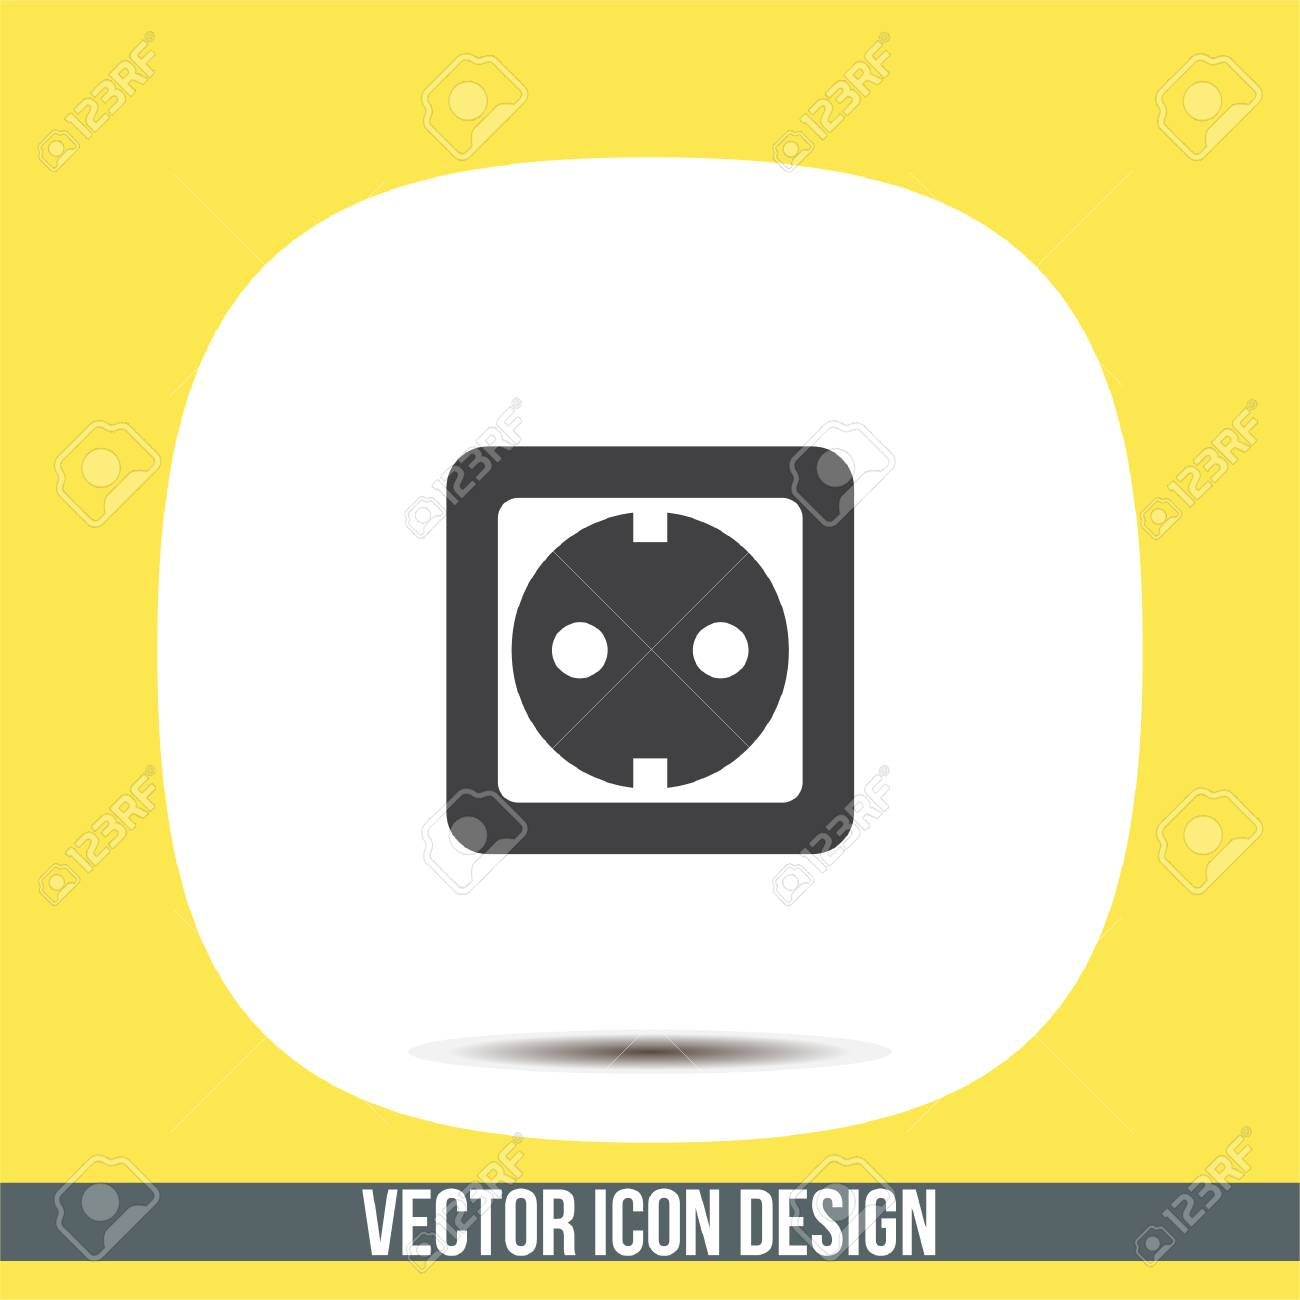 Power socket vector icon electric outlet sign power plug symbol power socket vector icon electric outlet sign power plug symbol stock vector 65825170 biocorpaavc Images